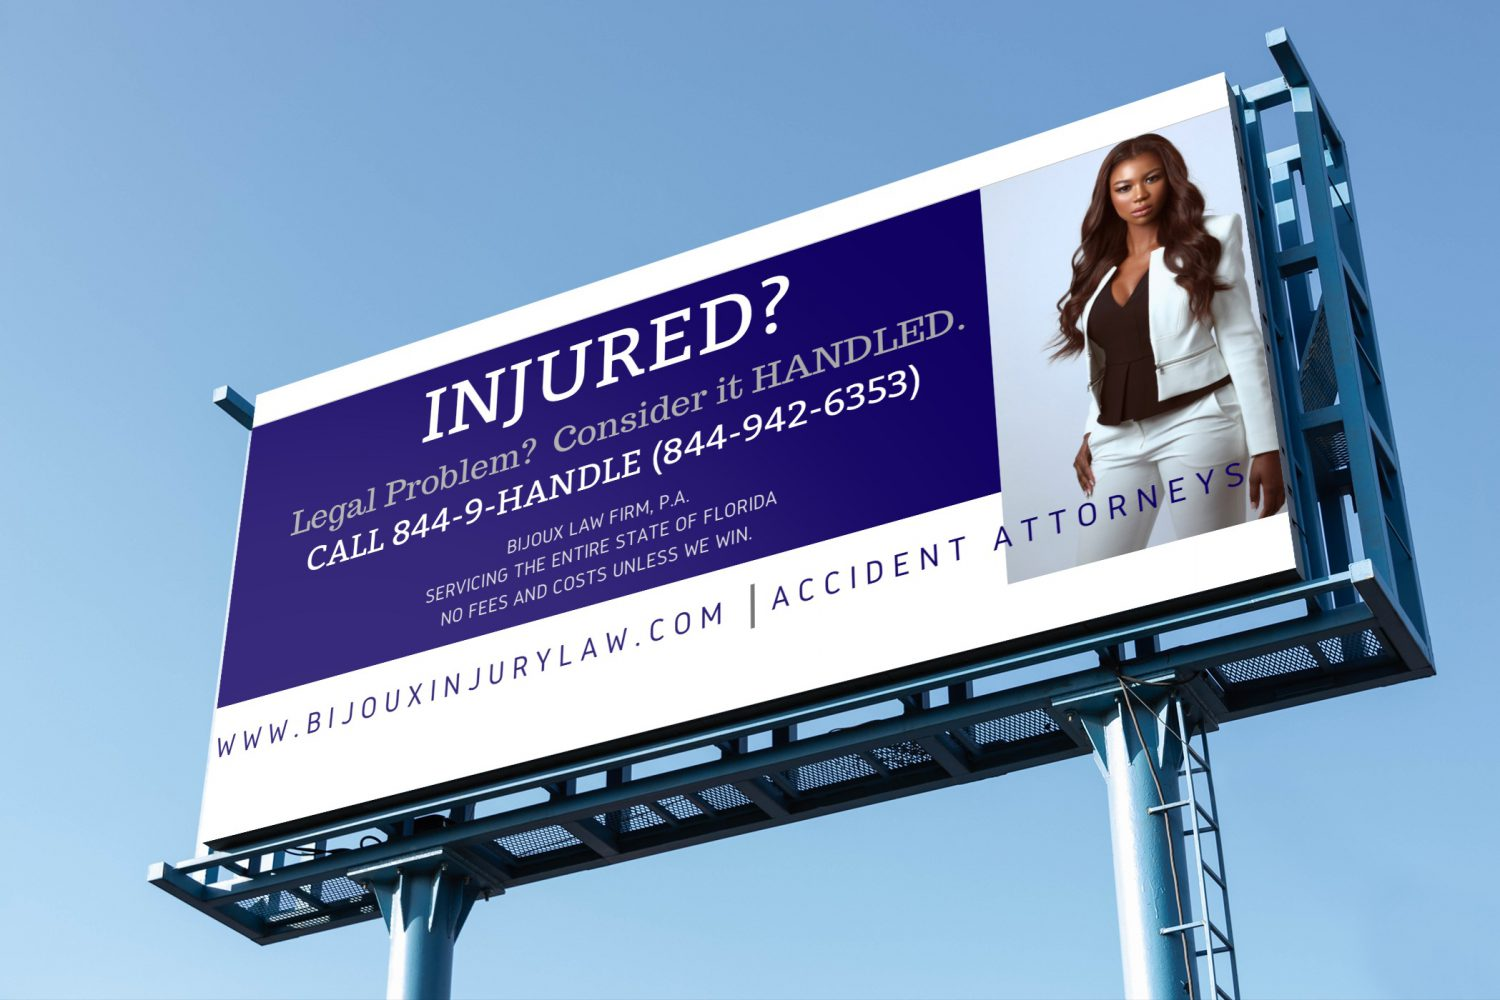 BIJOUX LAW FIRM, P.A. FLORIDA ACCIDENT LAWYERS